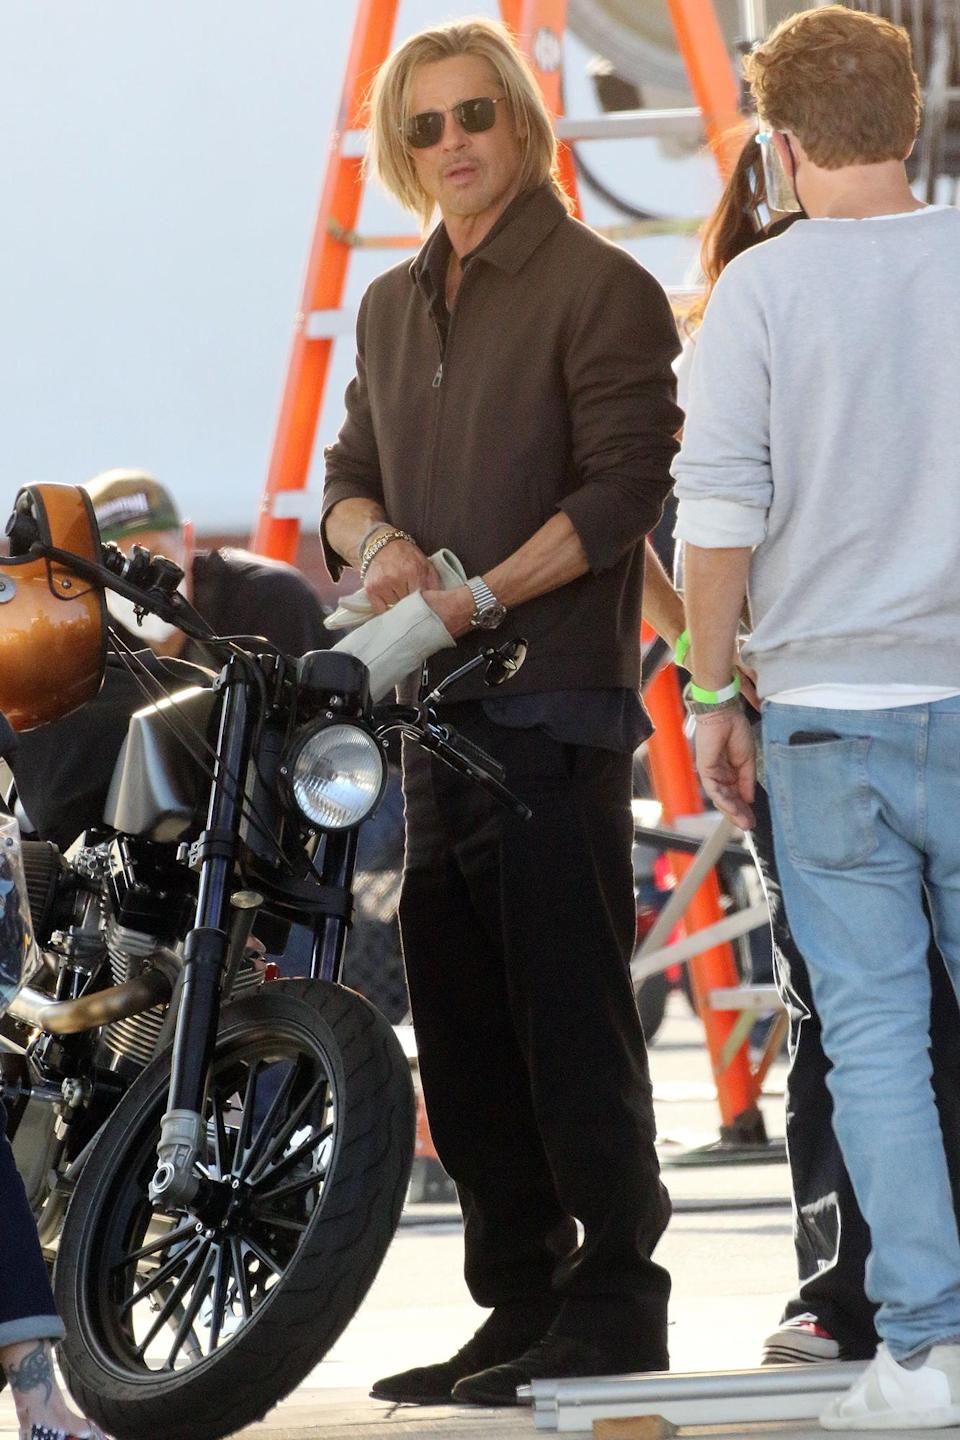 <p>Brad Pitt got ready to film commercial on a motorcycle in Los Angeles.</p>